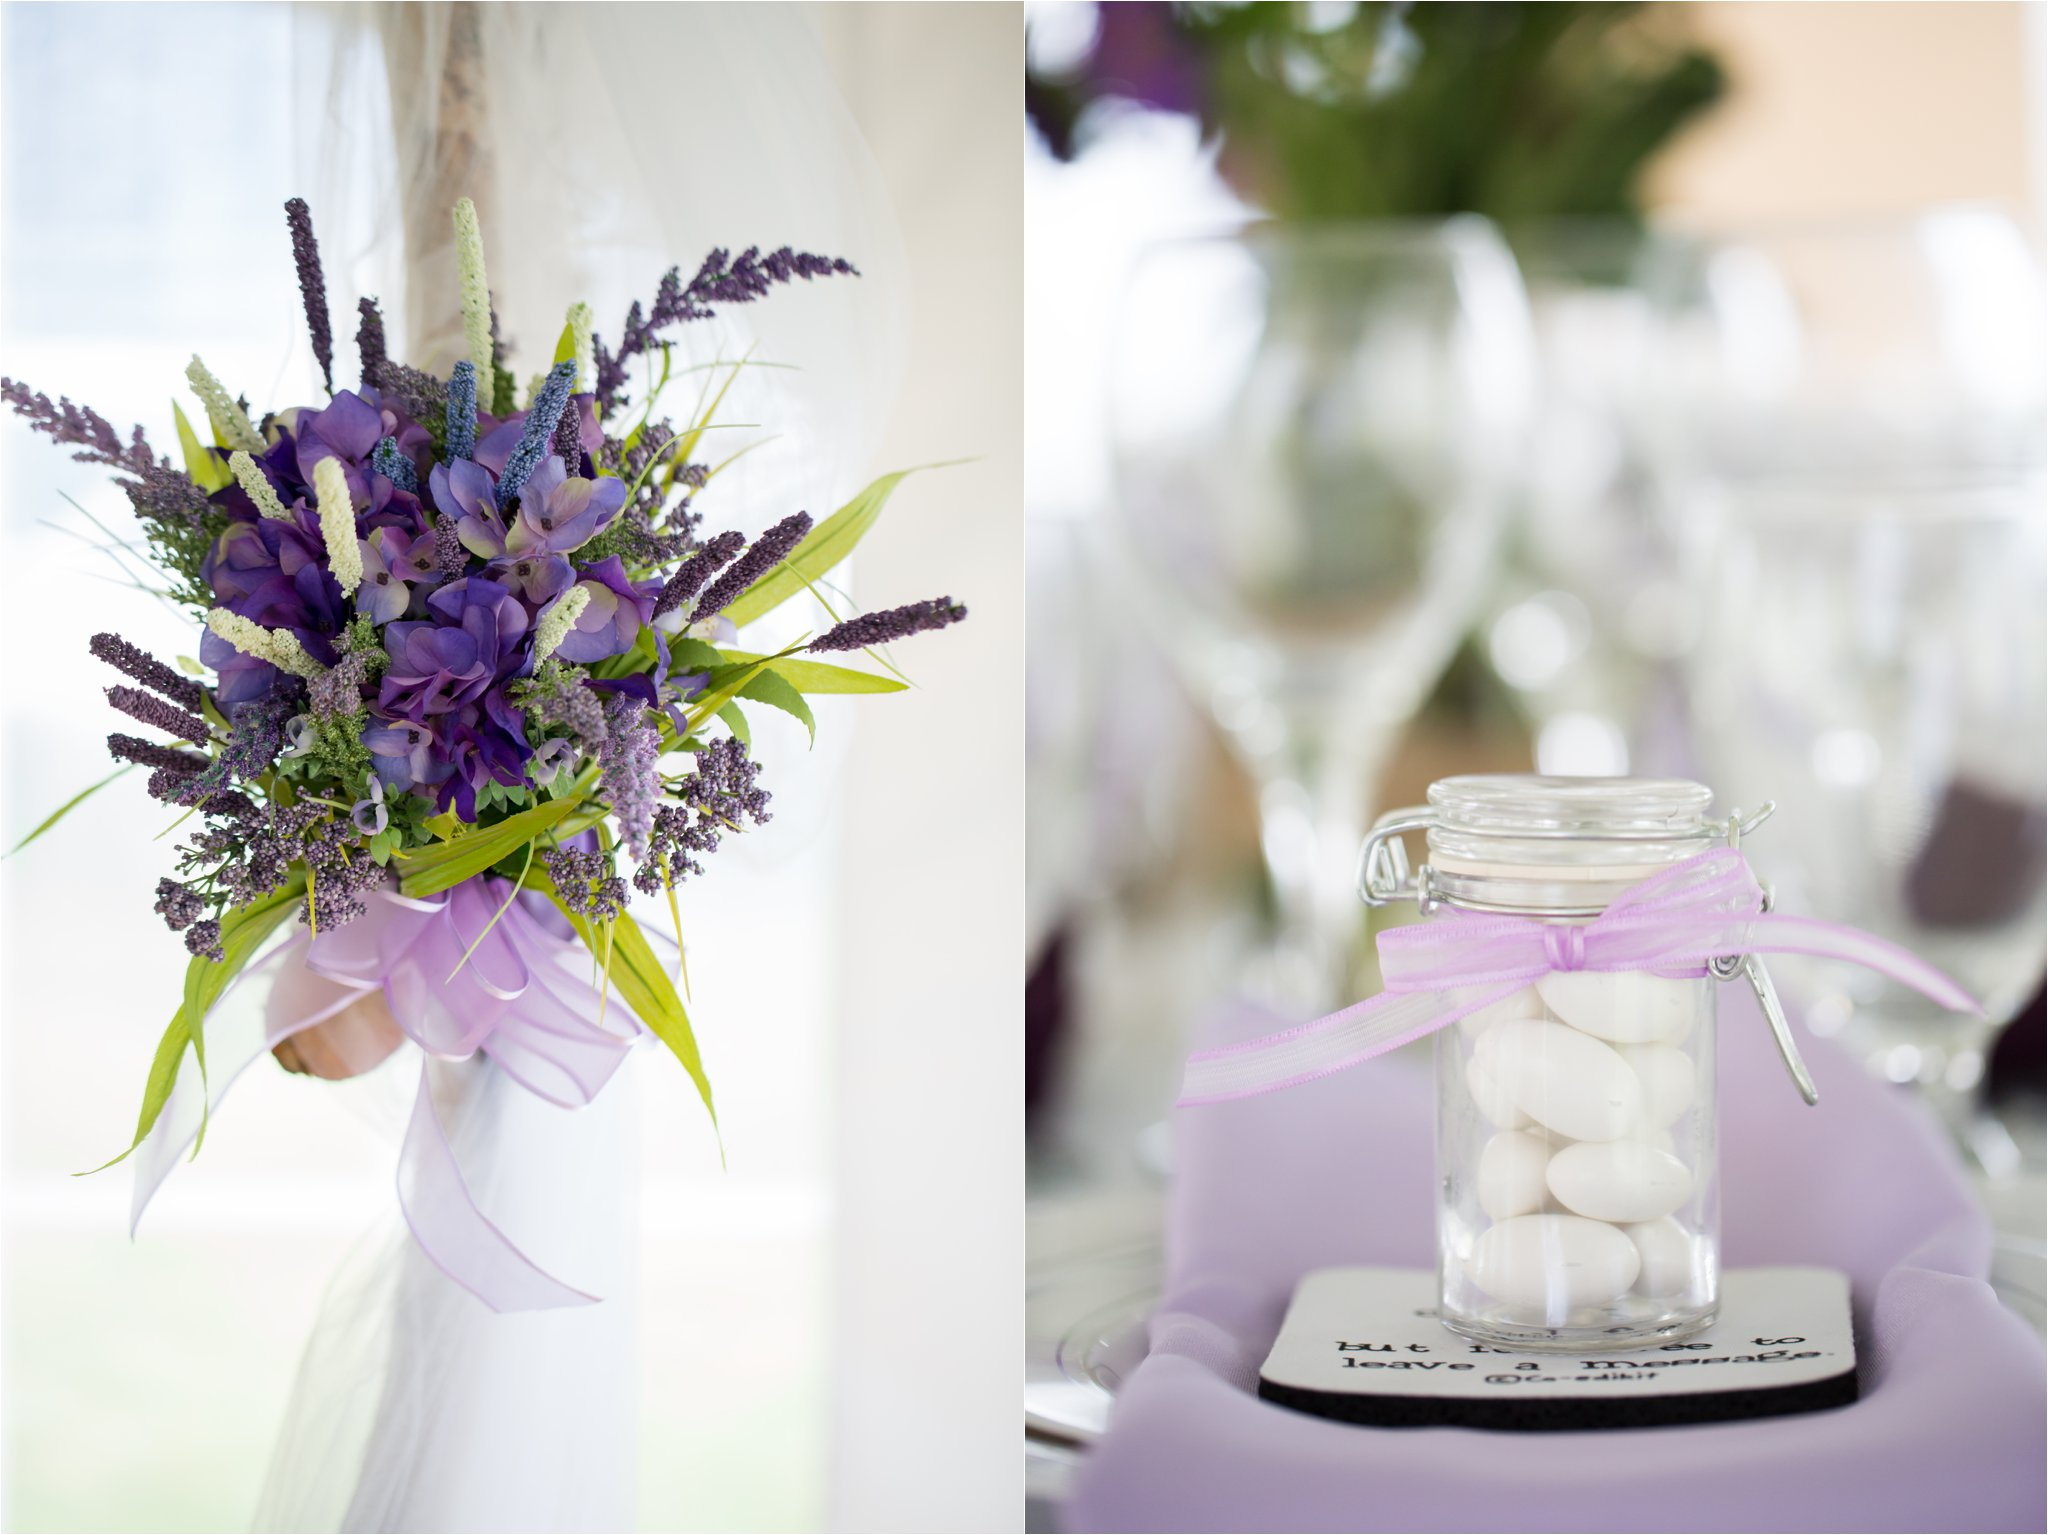 Wedding Table Details (C) Maundy Mitchell